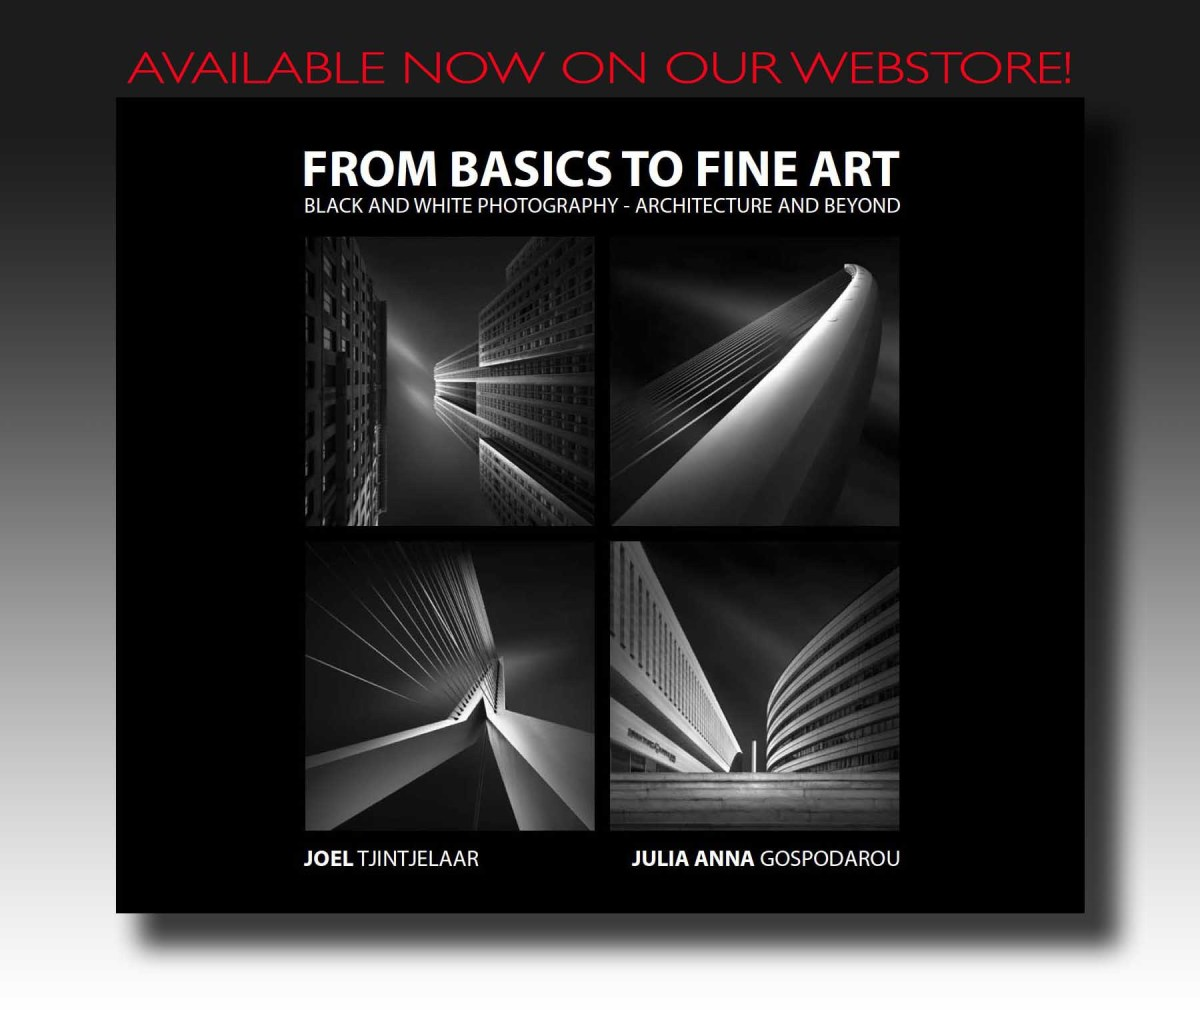 From Basics To Fine Art - Black and White Photography - Architecture and Beyond - The Book